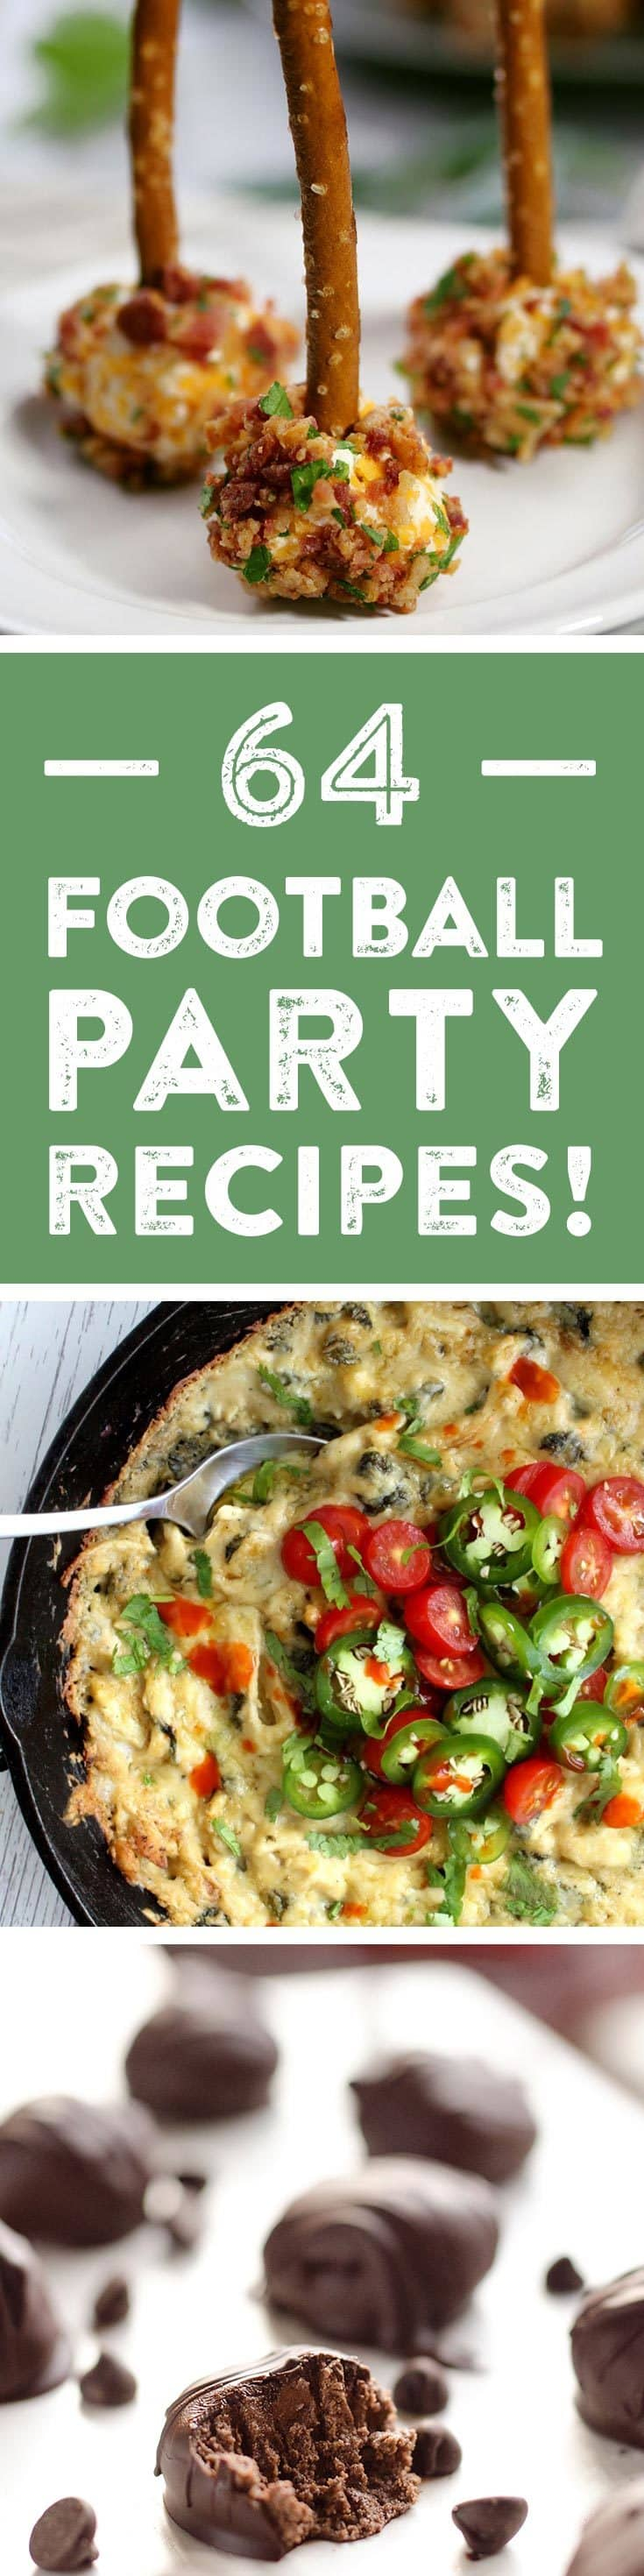 With the football season coming to a close, it's time to start thinking about Big Game parties and inevitably, the recipes you will make and bring to yours! In preparation, I've teamed up with my football blogger friends in one final collaboration to bring you some brilliant Big Game recipe ideas. We've made appetizers, entrees, desserts and even drinks. Prepare to be inspired!